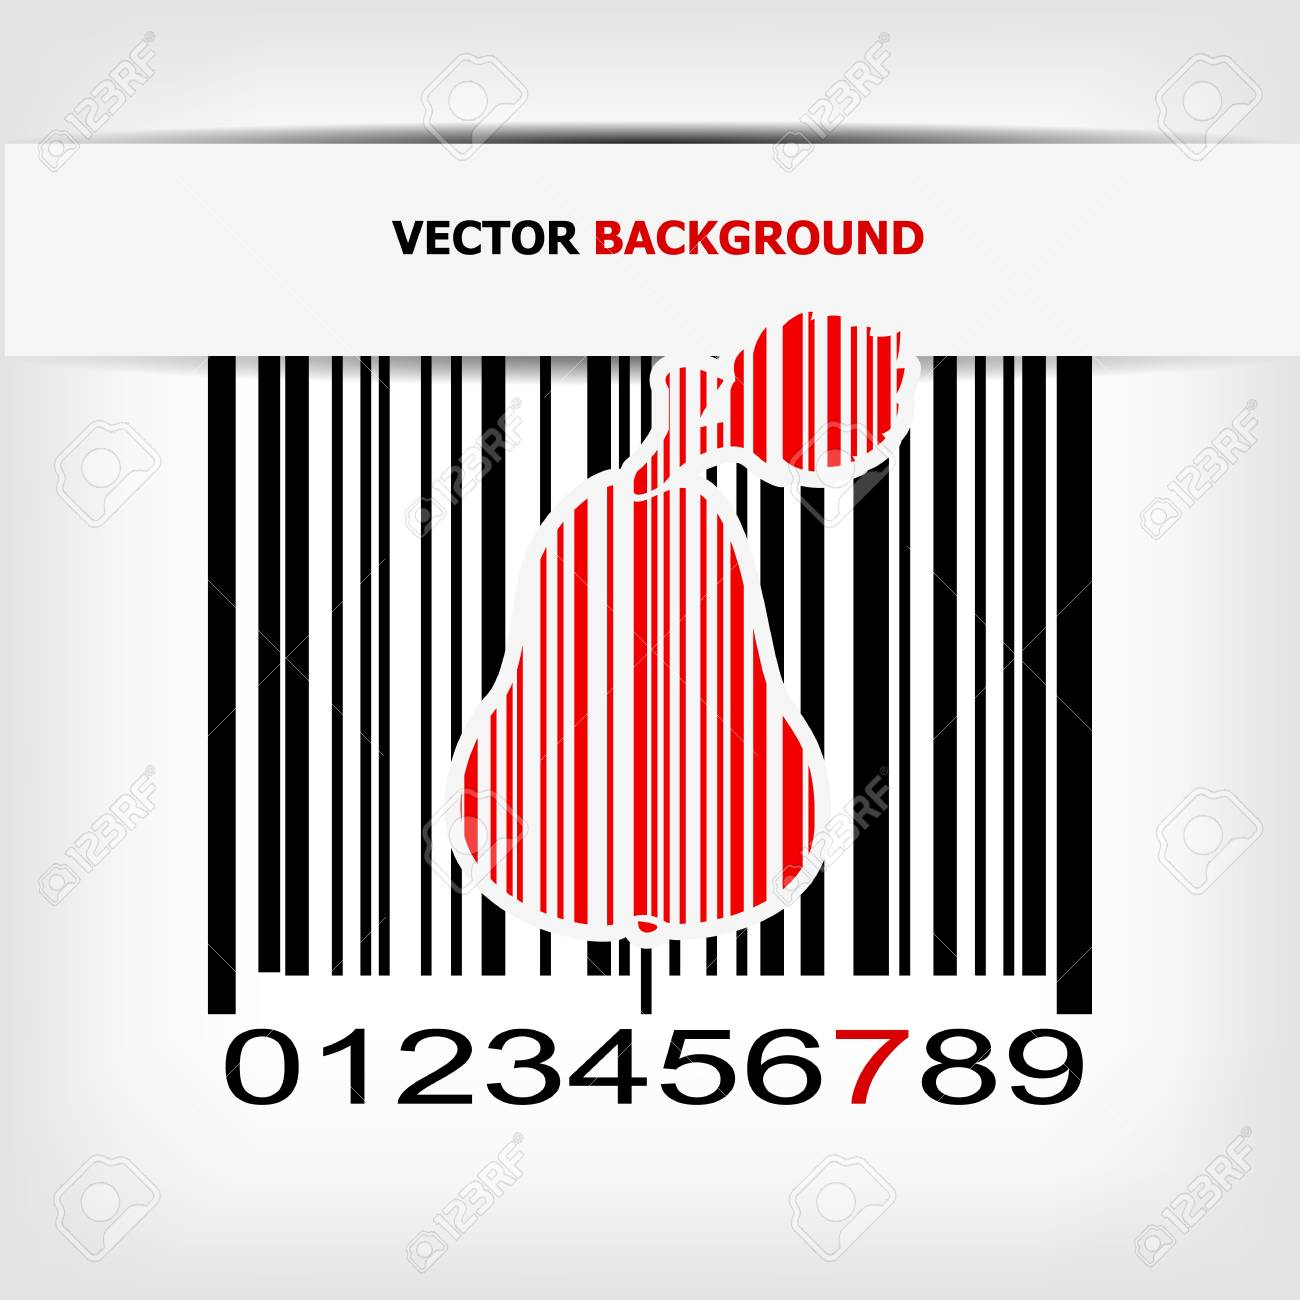 Bar code image with red strip illustration Stock Vector - 19008676